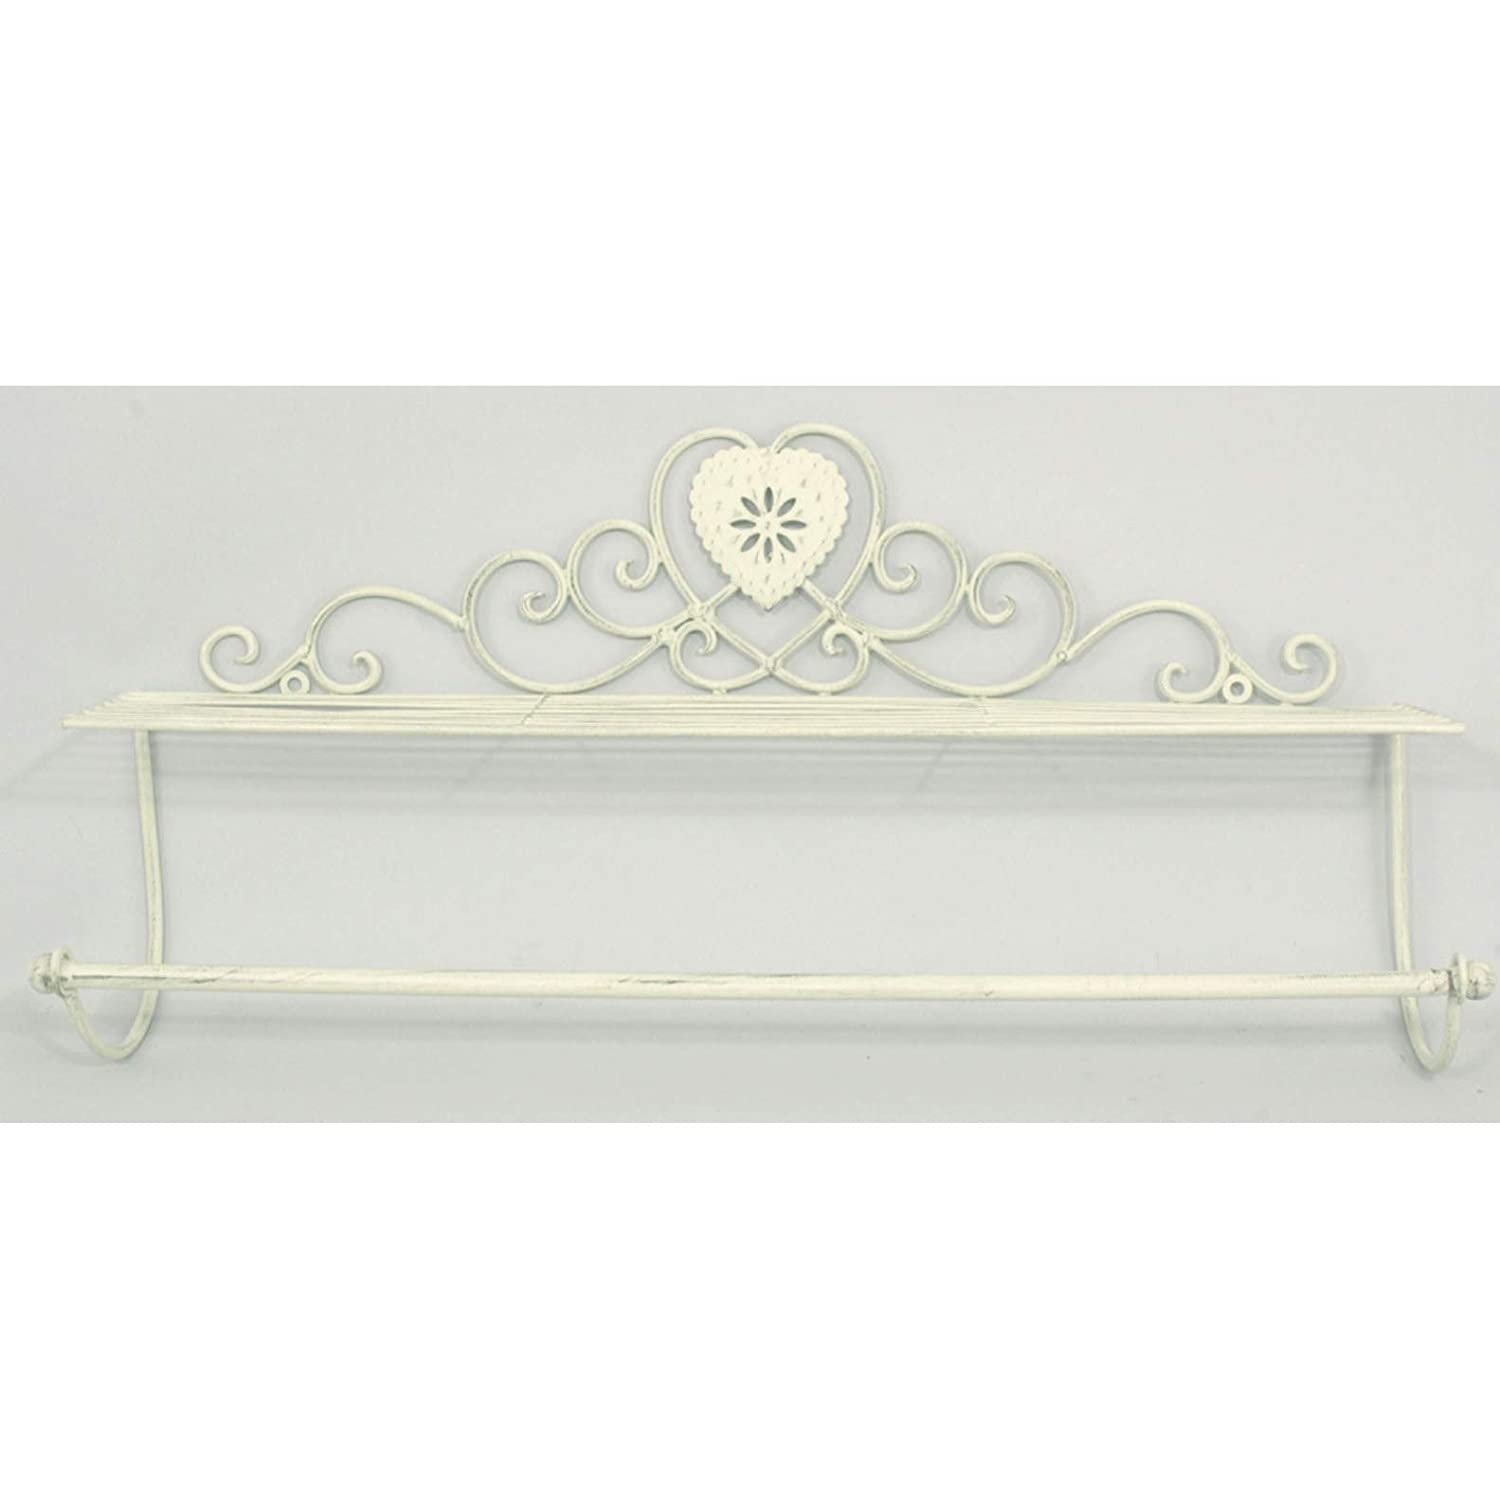 Interior Flair Shabby Chic Antique Grey Painted Metal Towel Rail Holder